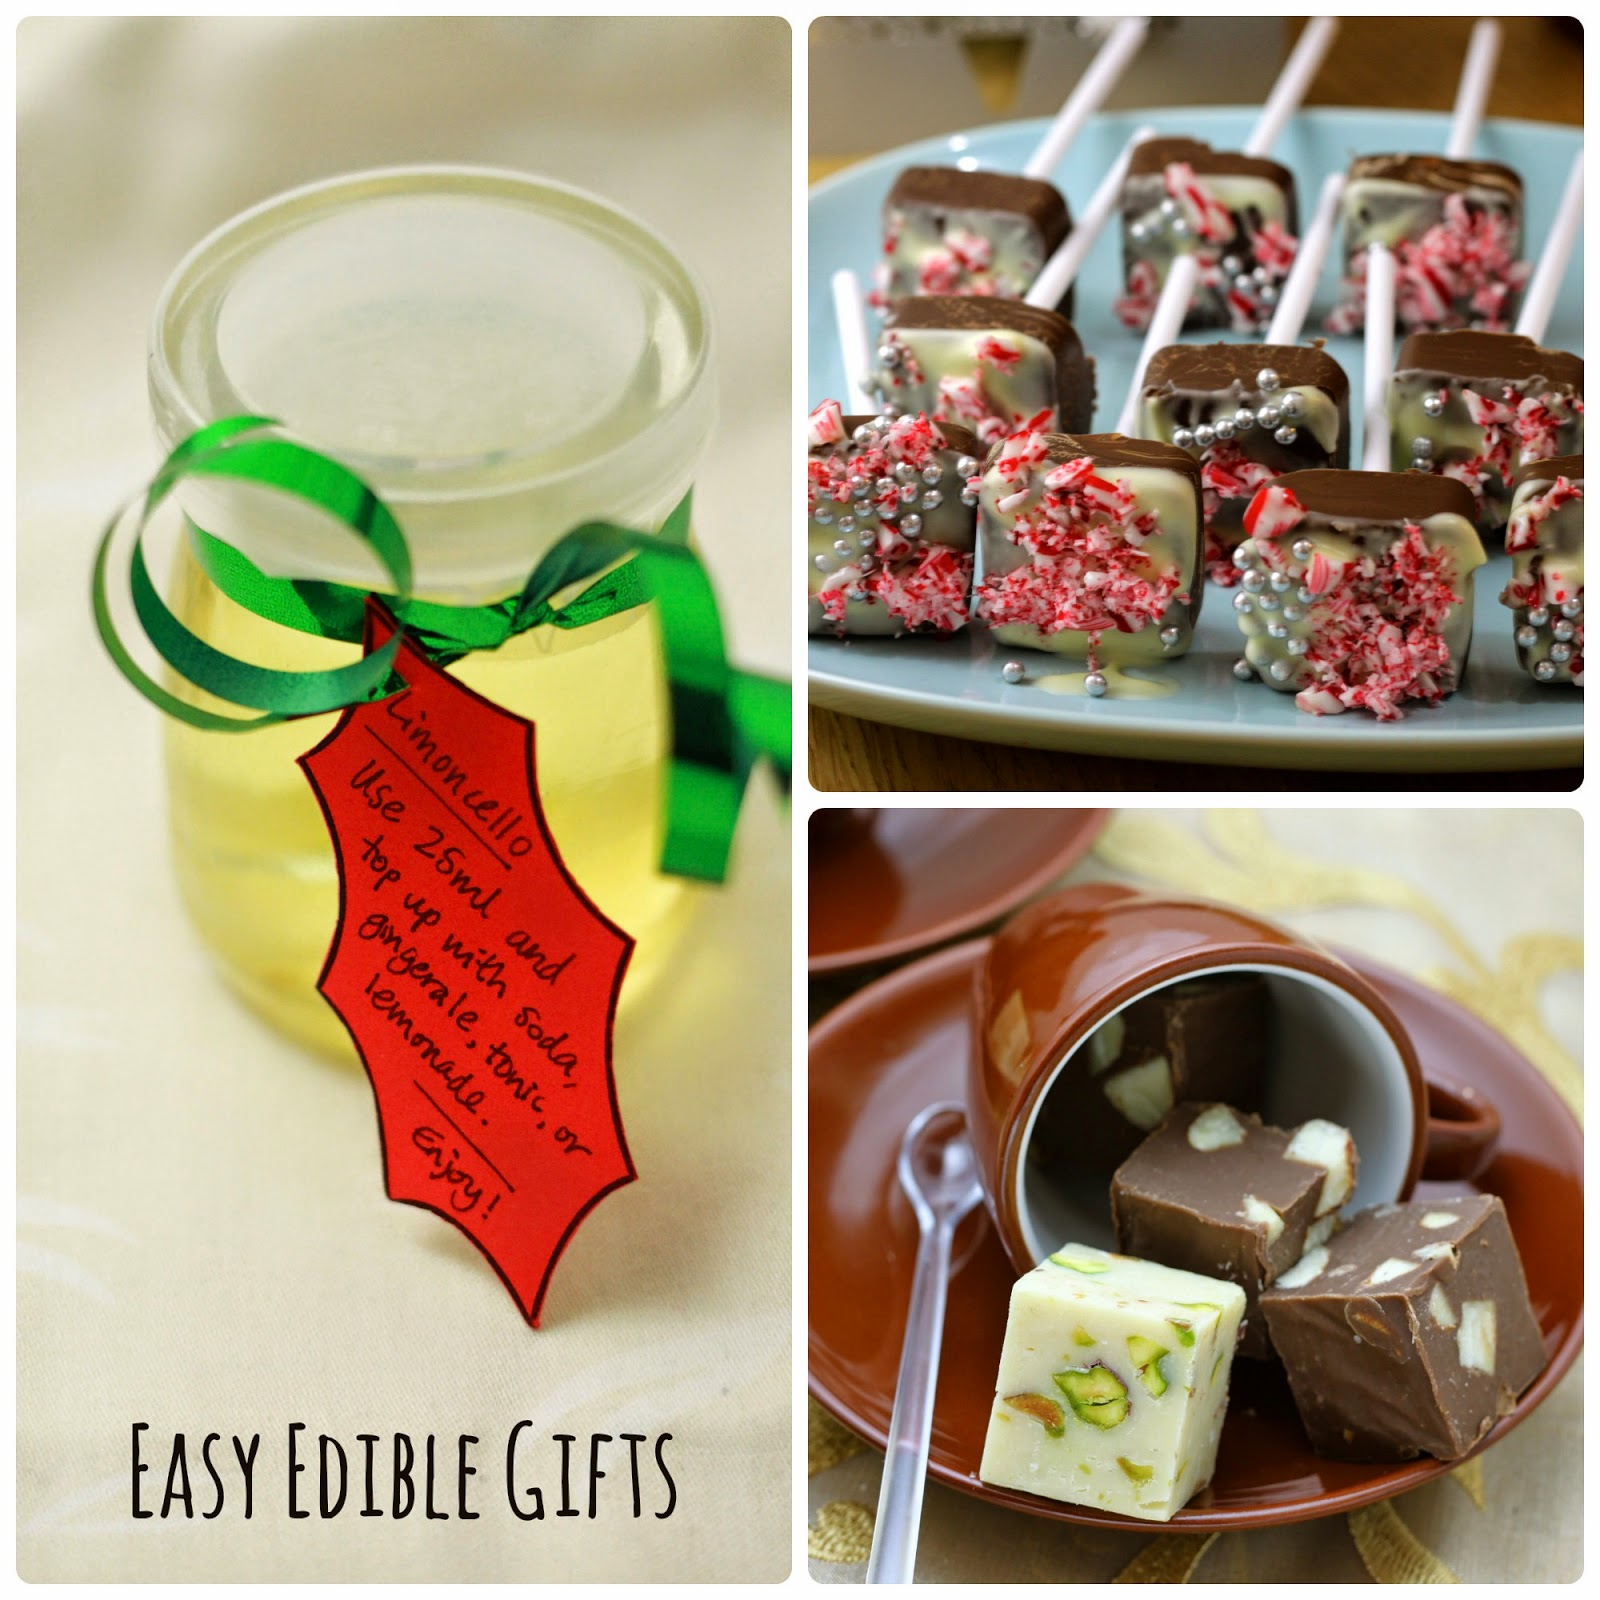 Simply Cooked: Easy Edible Gifts For Christmas